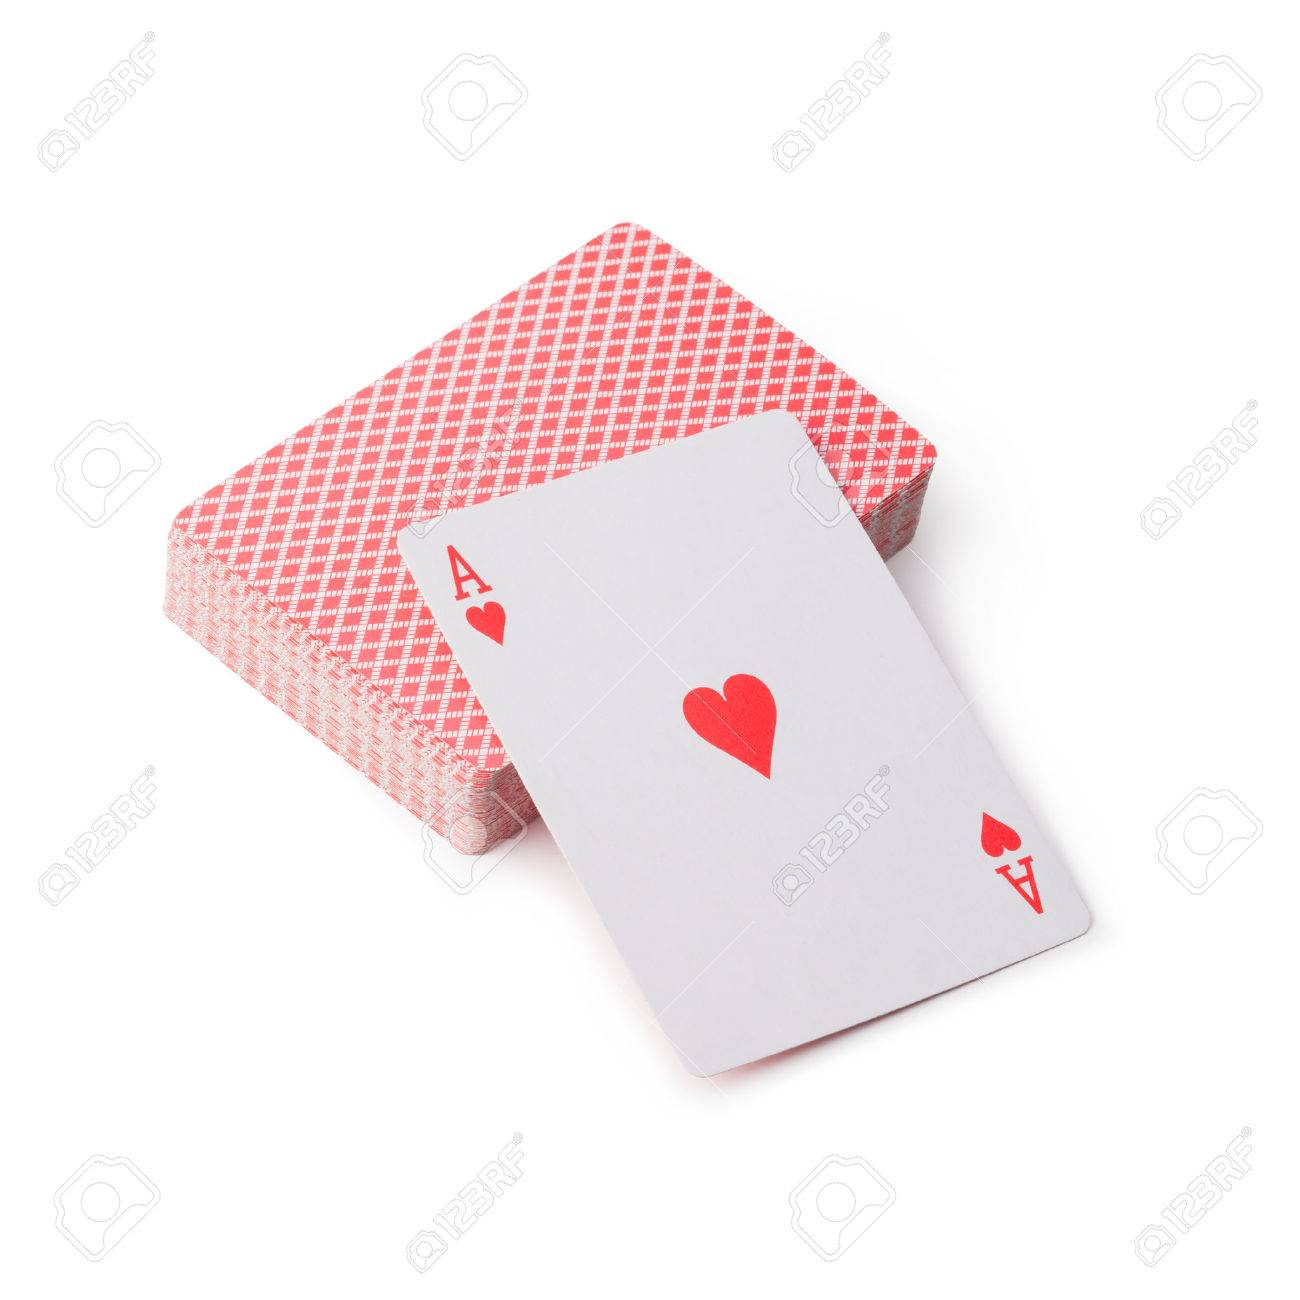 playing cards on white background - 51691432